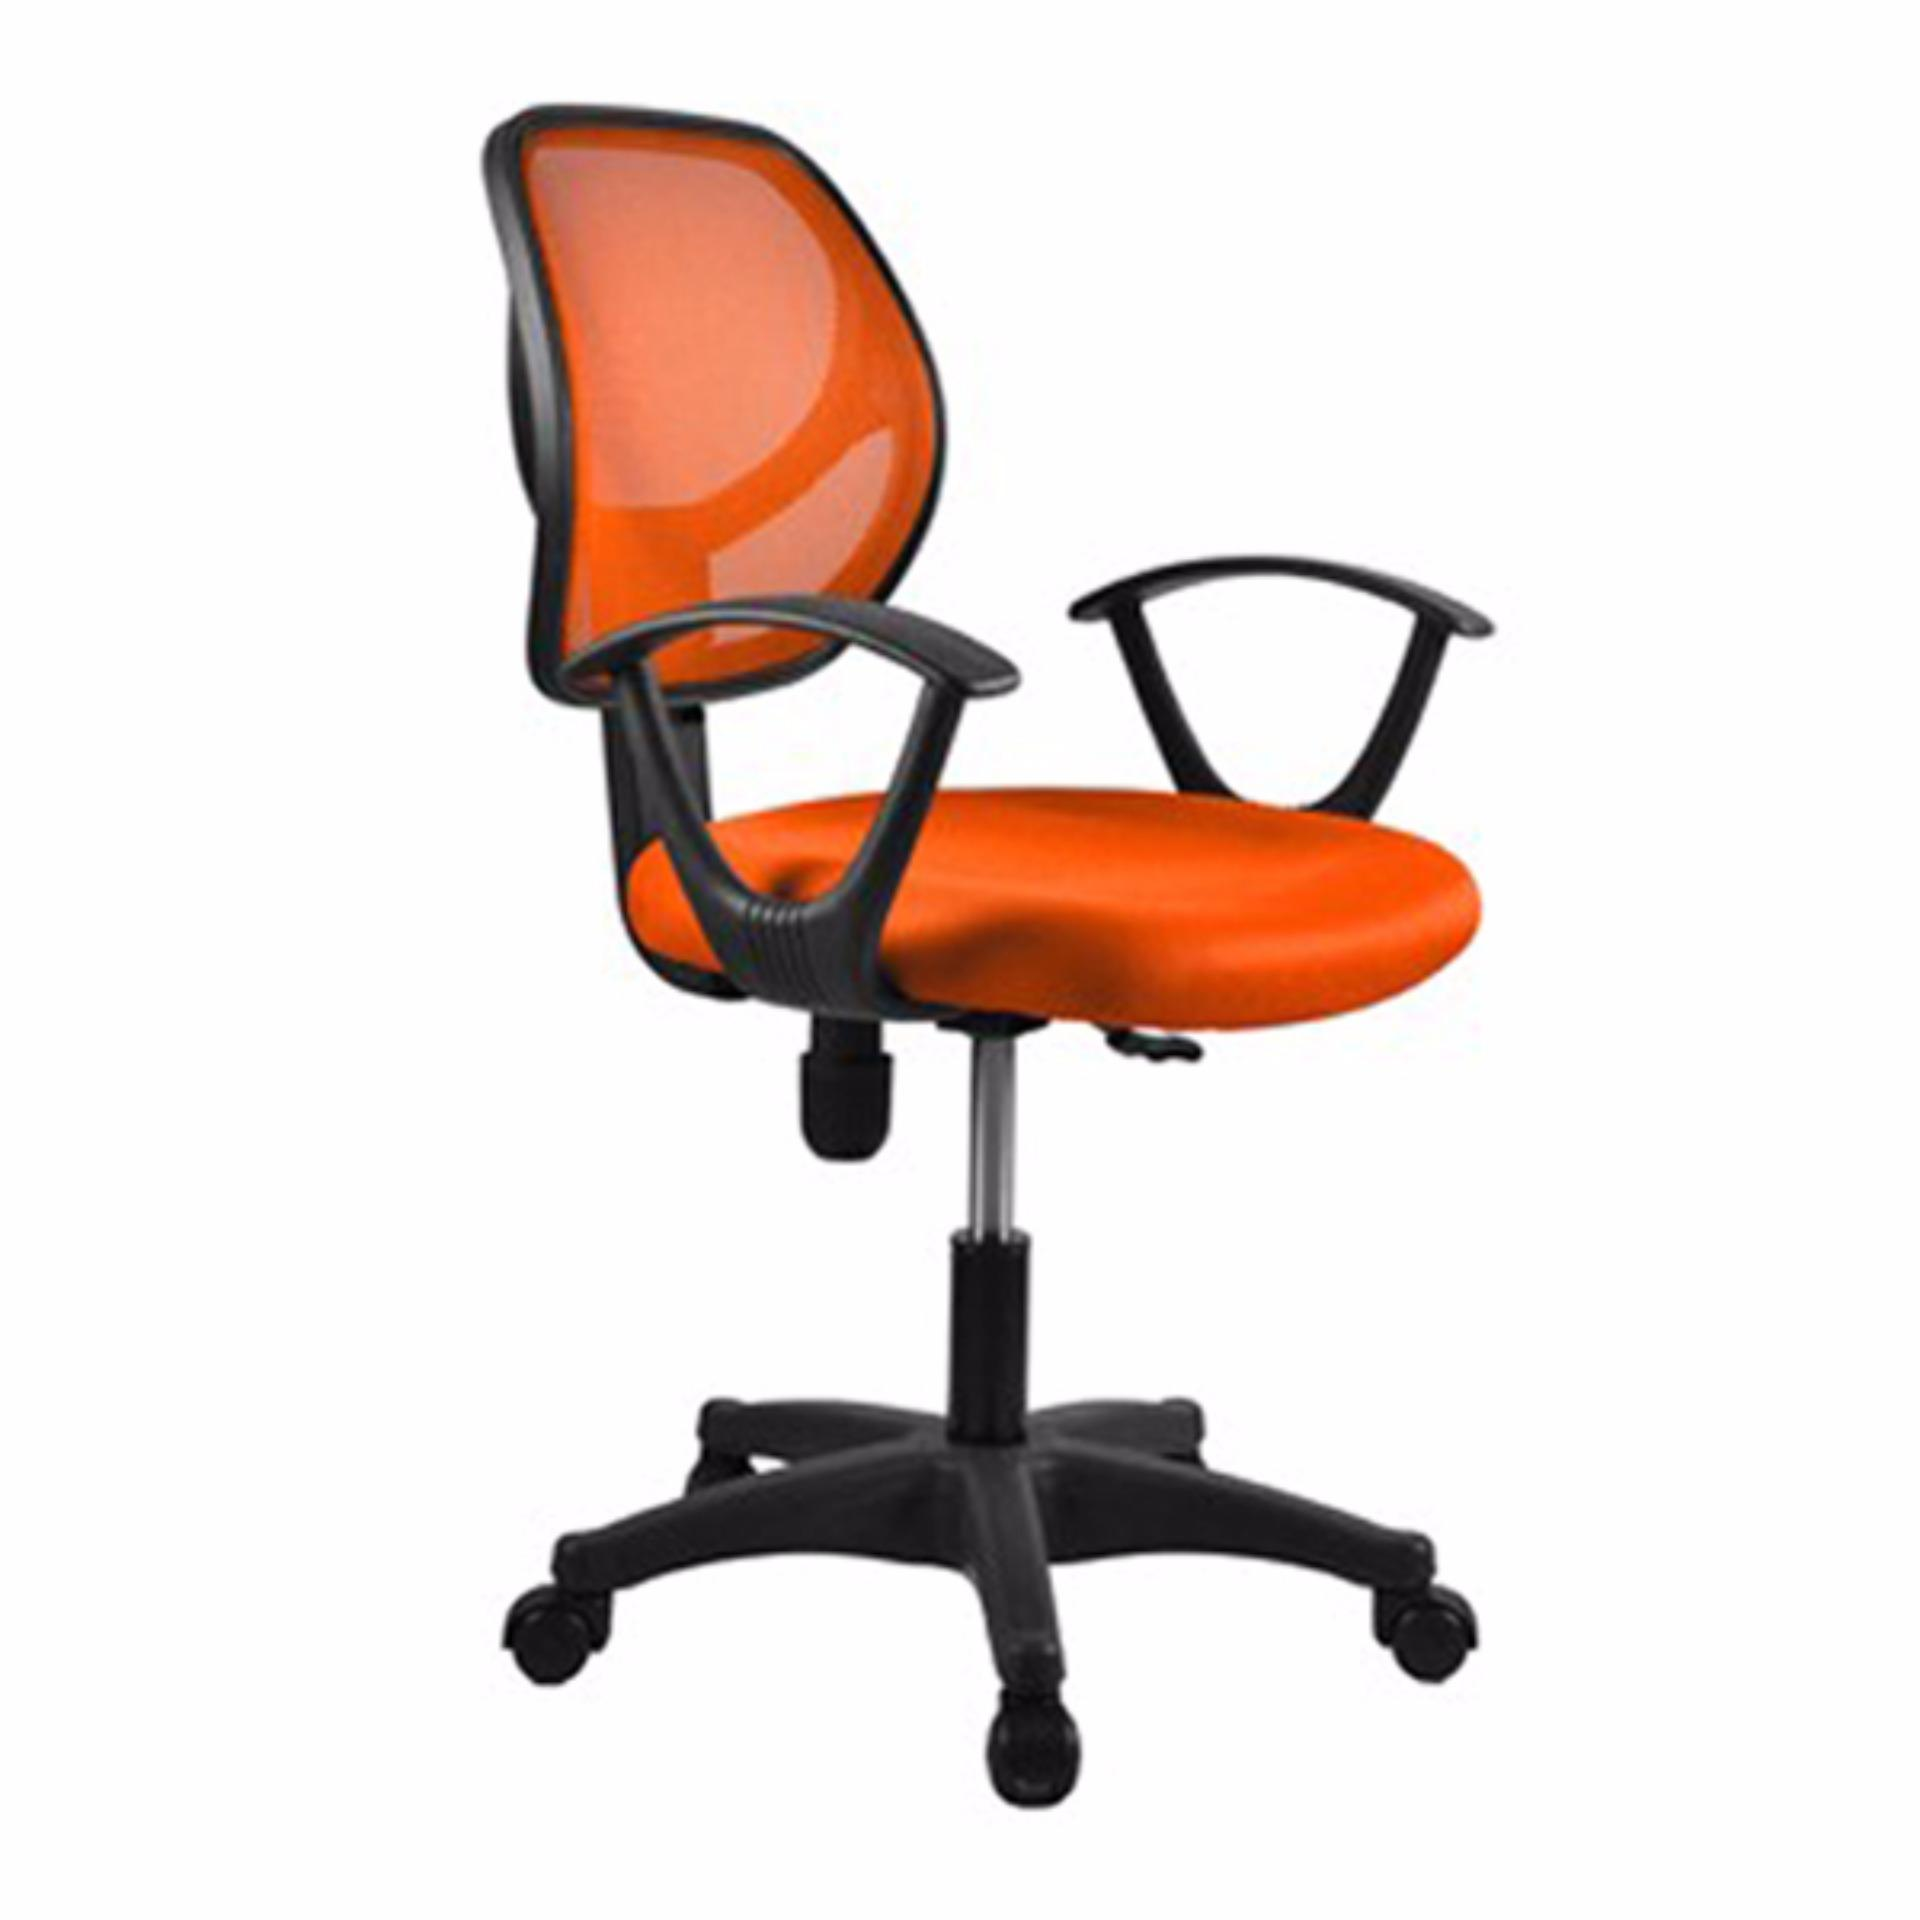 Basic Office Chair Rein S02 Orange Delivery Weekdays Before 6pm Singapore